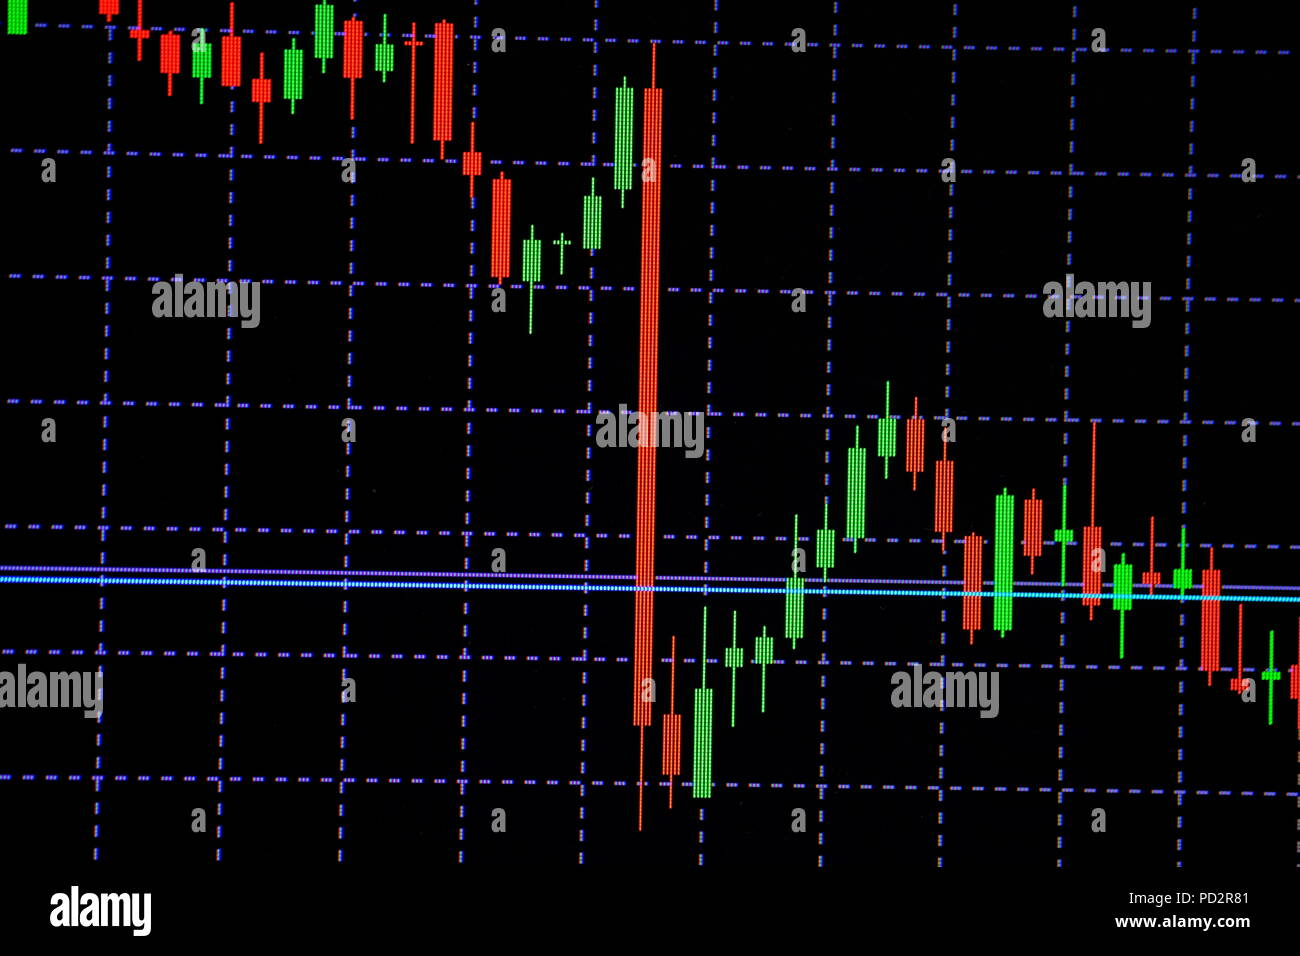 Candle stick graph chart with indicator showing bullish point or bearish point, up trend or down trend of price of stock market or stock exchange trad - Stock Image